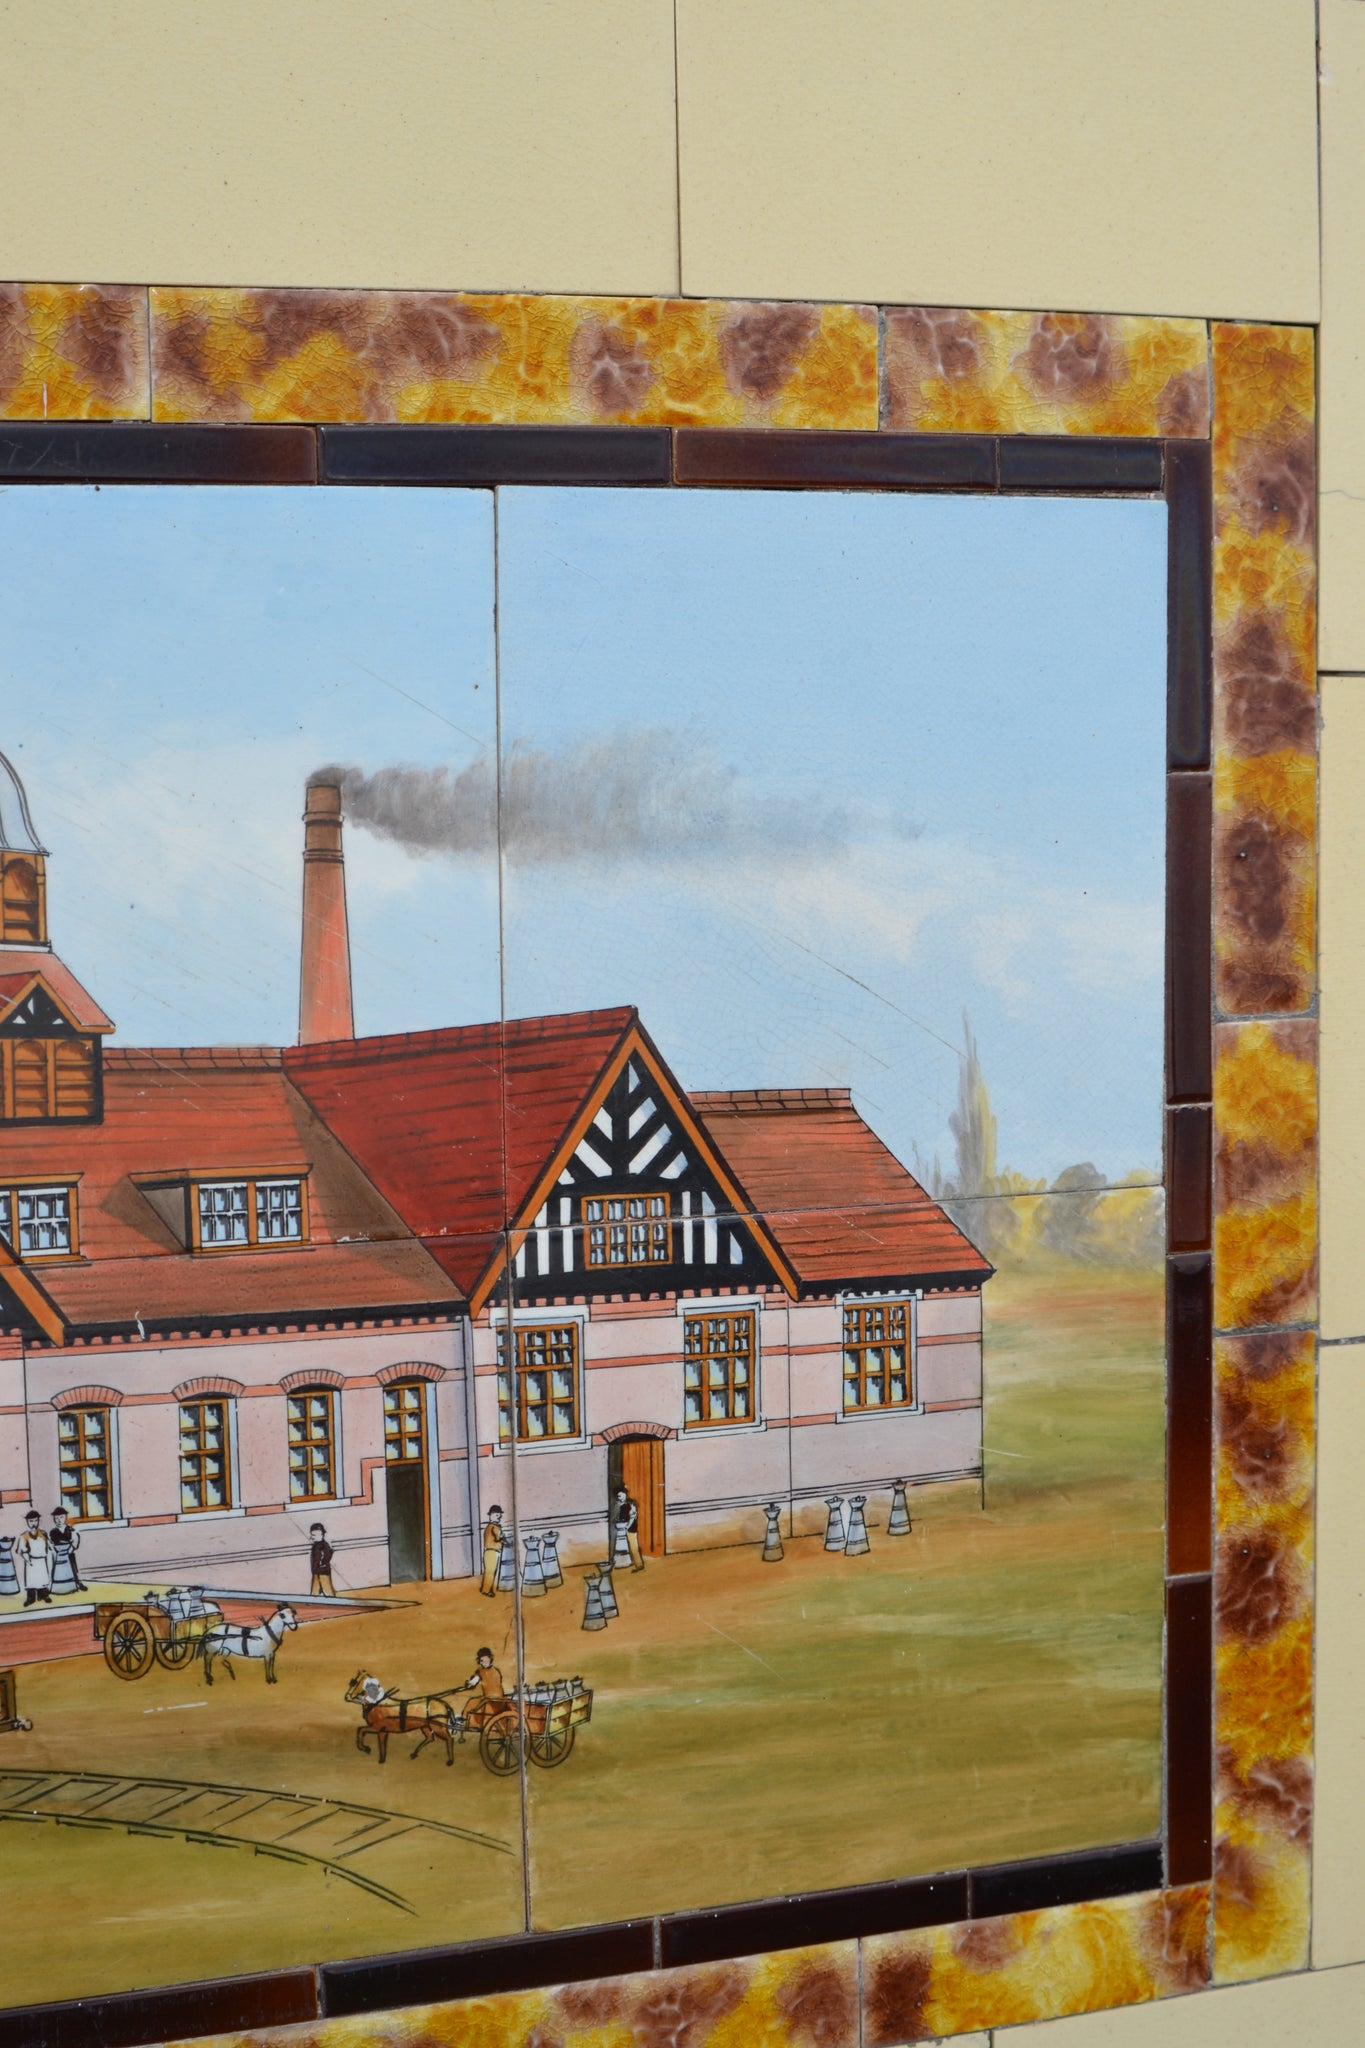 A set of Maypole Dairy Company tiles